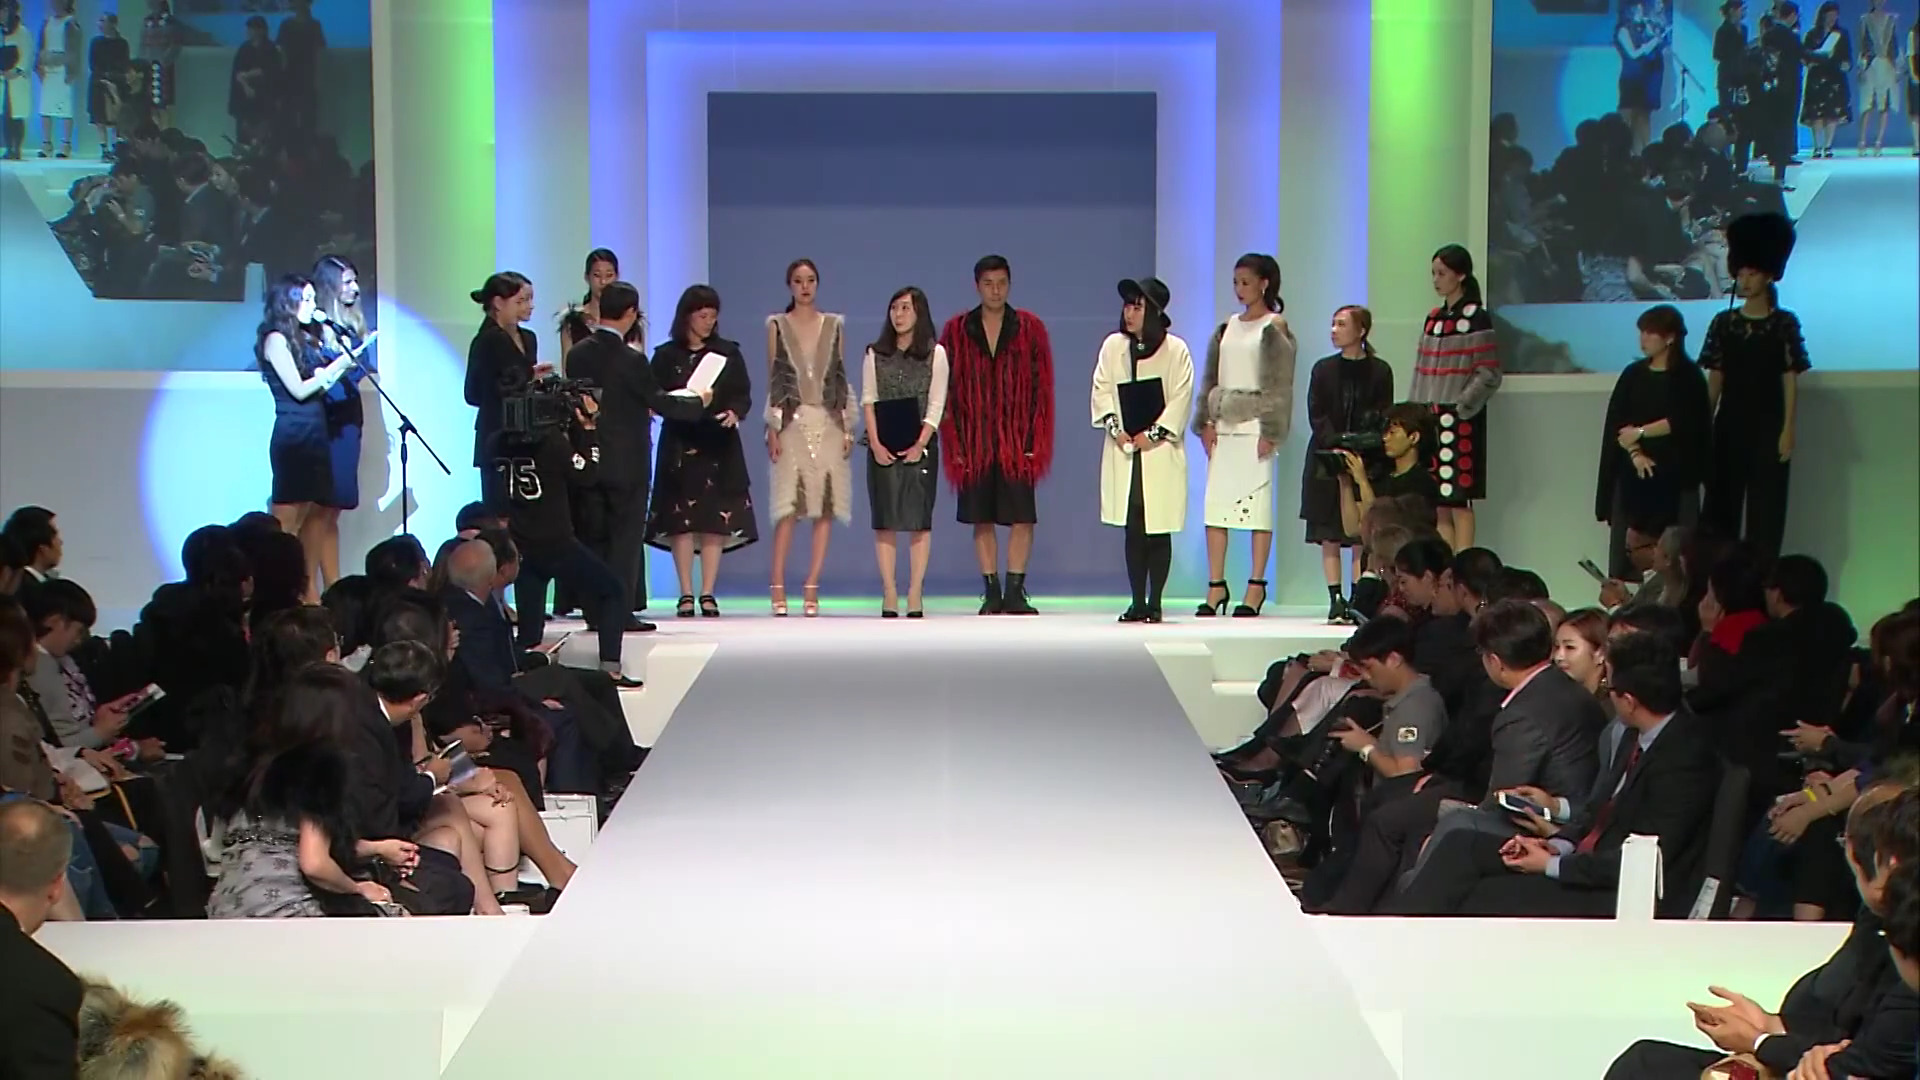 snapshot - ASIA FUR DESIGN SHOWCASE 2015 - Fur Future Winners